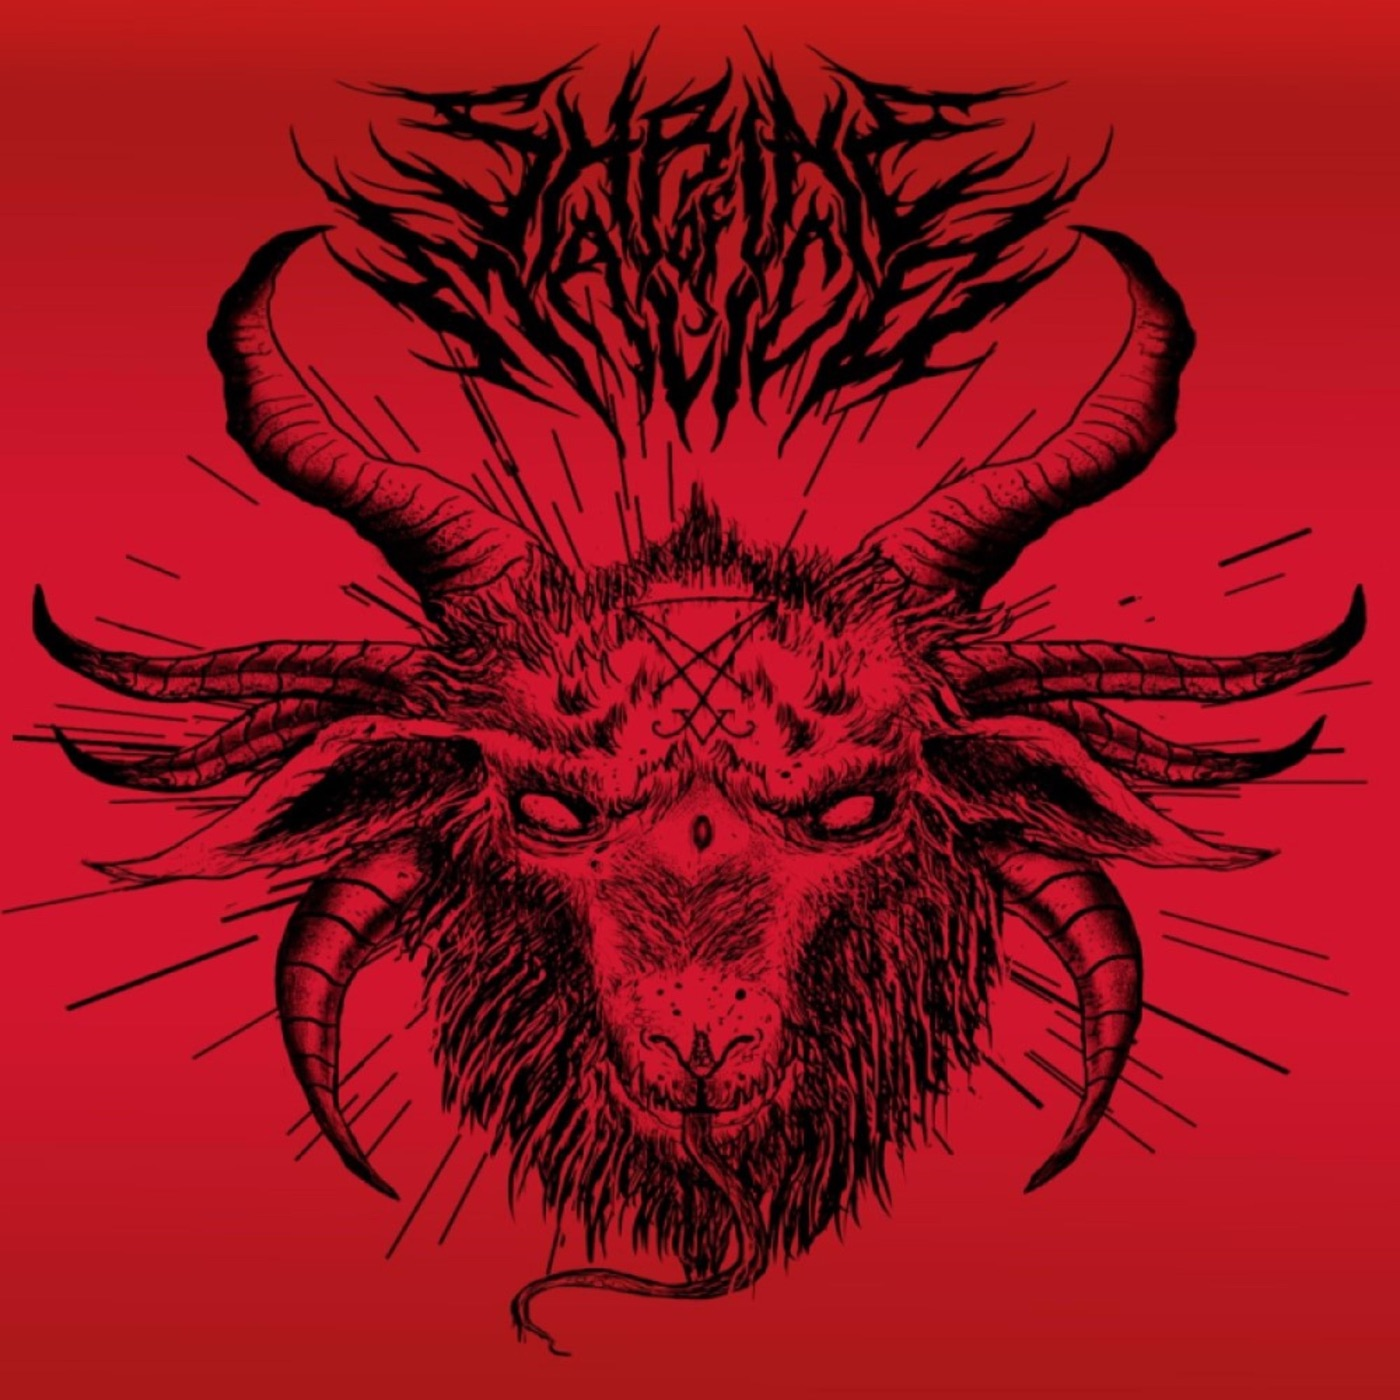 Shrine of Malice - Carnal Beast [single] (2019)